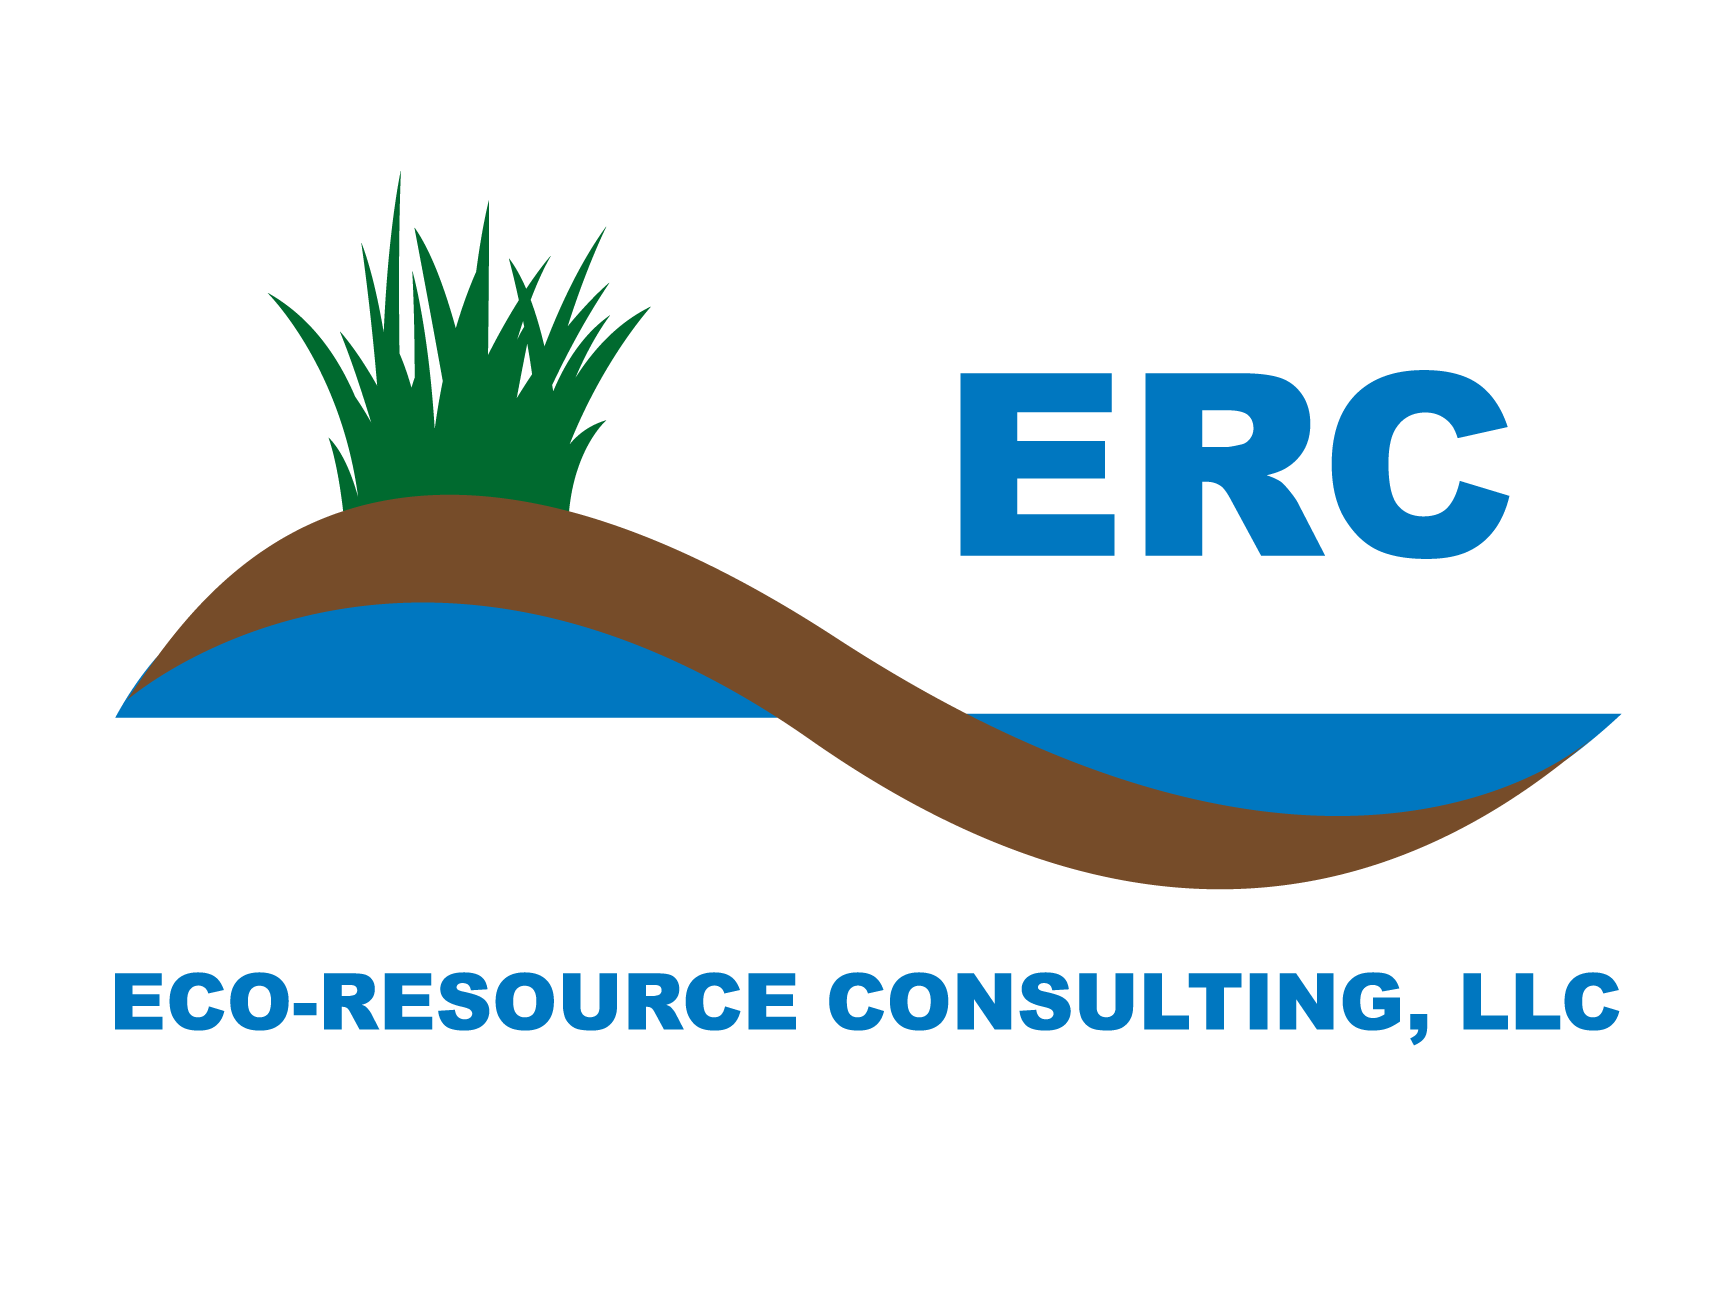 Eco-Resource Consulting, LLC